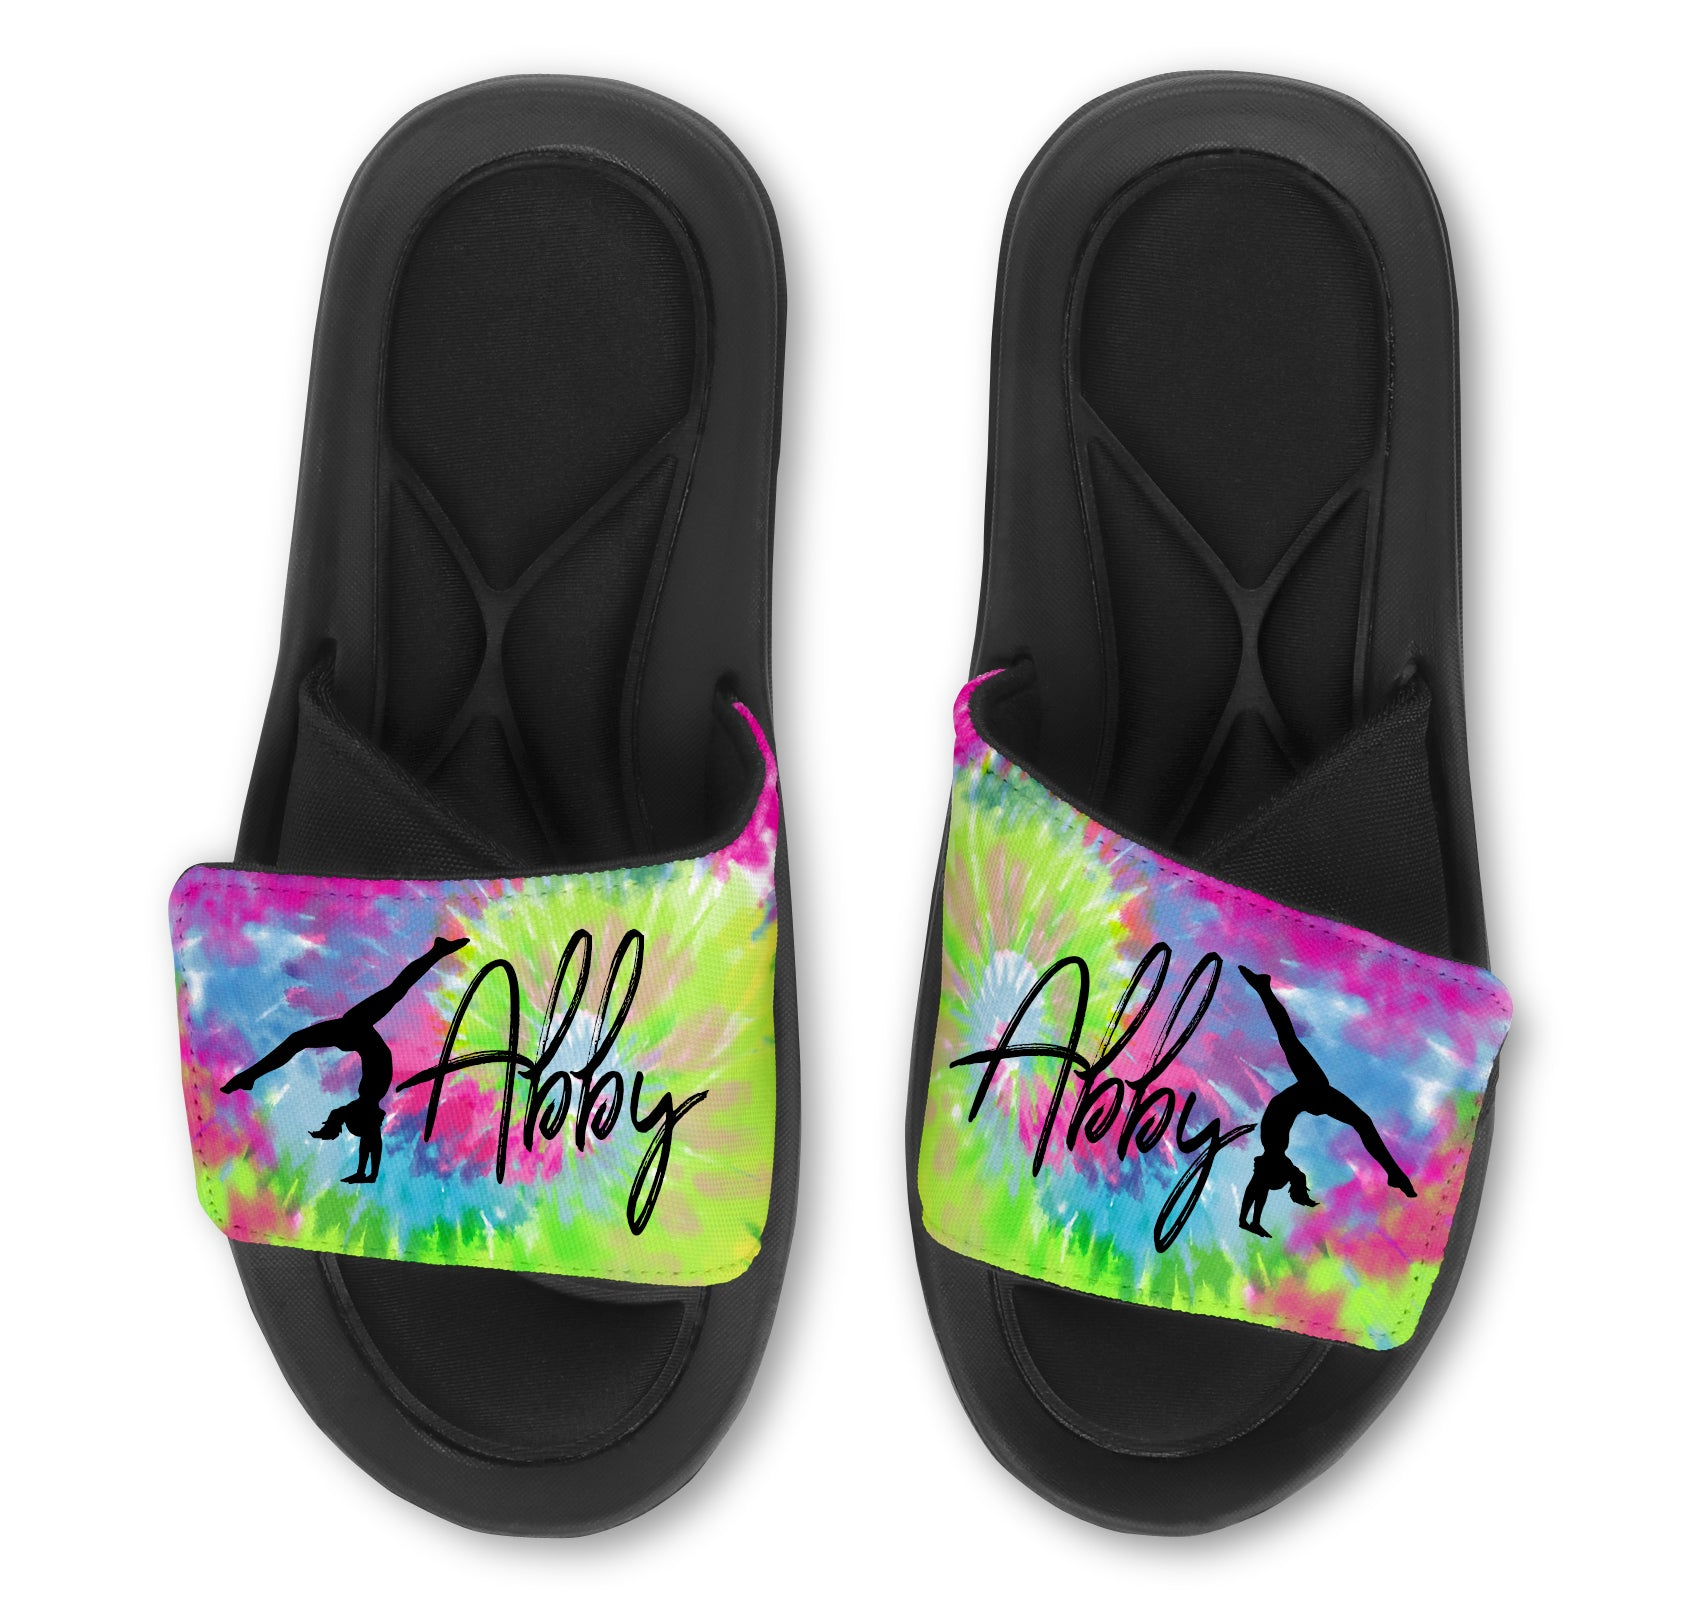 Gymnastics Custom Slides / Sandals -Tie Dye